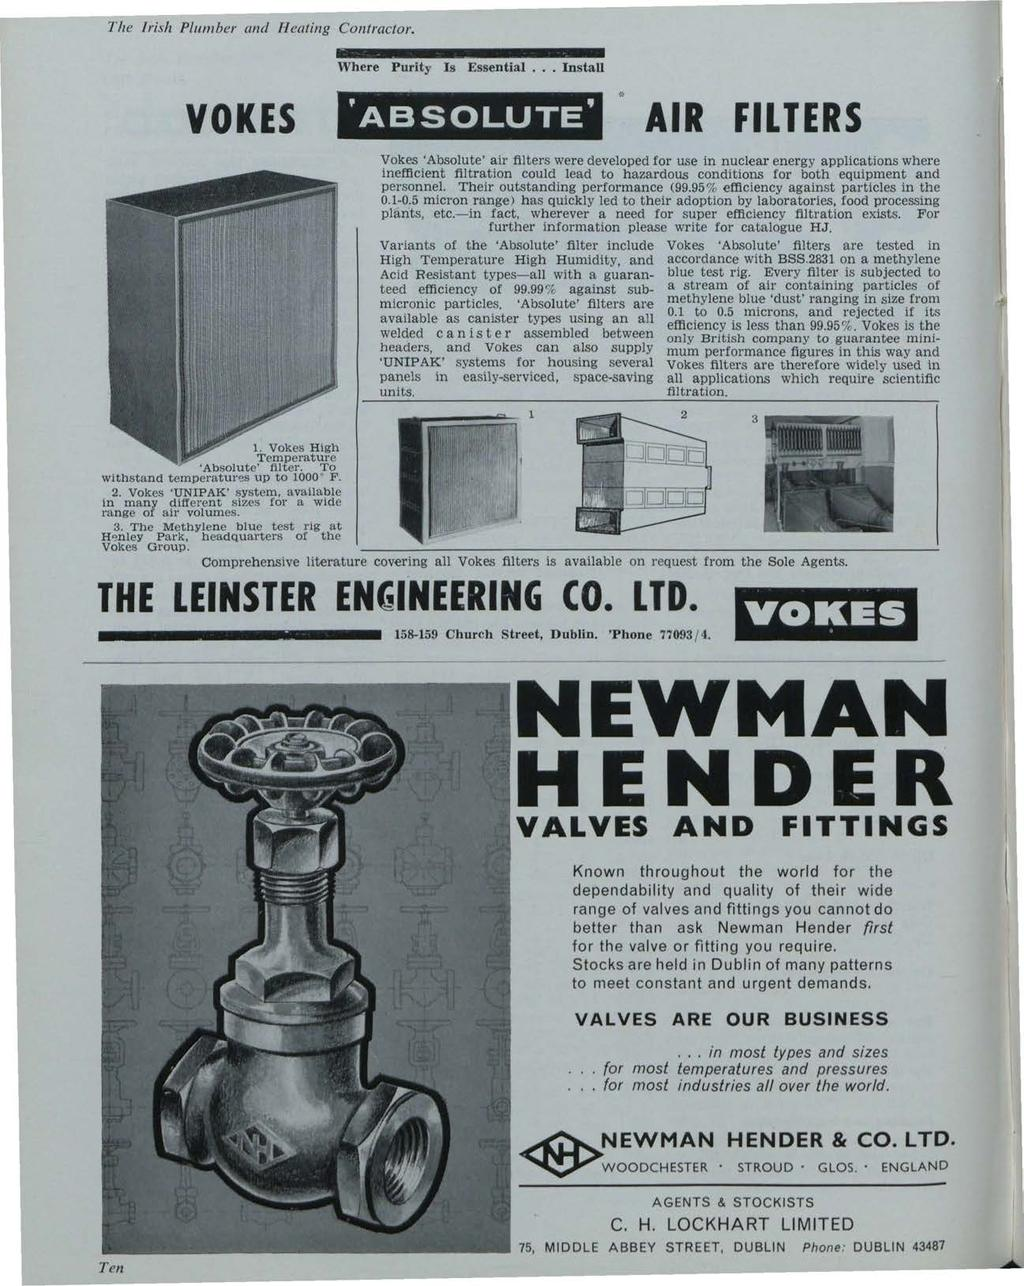 The Irish Plumber and Heating Contractor. Building Services News, Vol. 2, Iss. 12 [1963], Art. 1 Where Purity Is Essential.. Install -:: VOKES 'ABSOLUTE' AIR FILTERS 1.